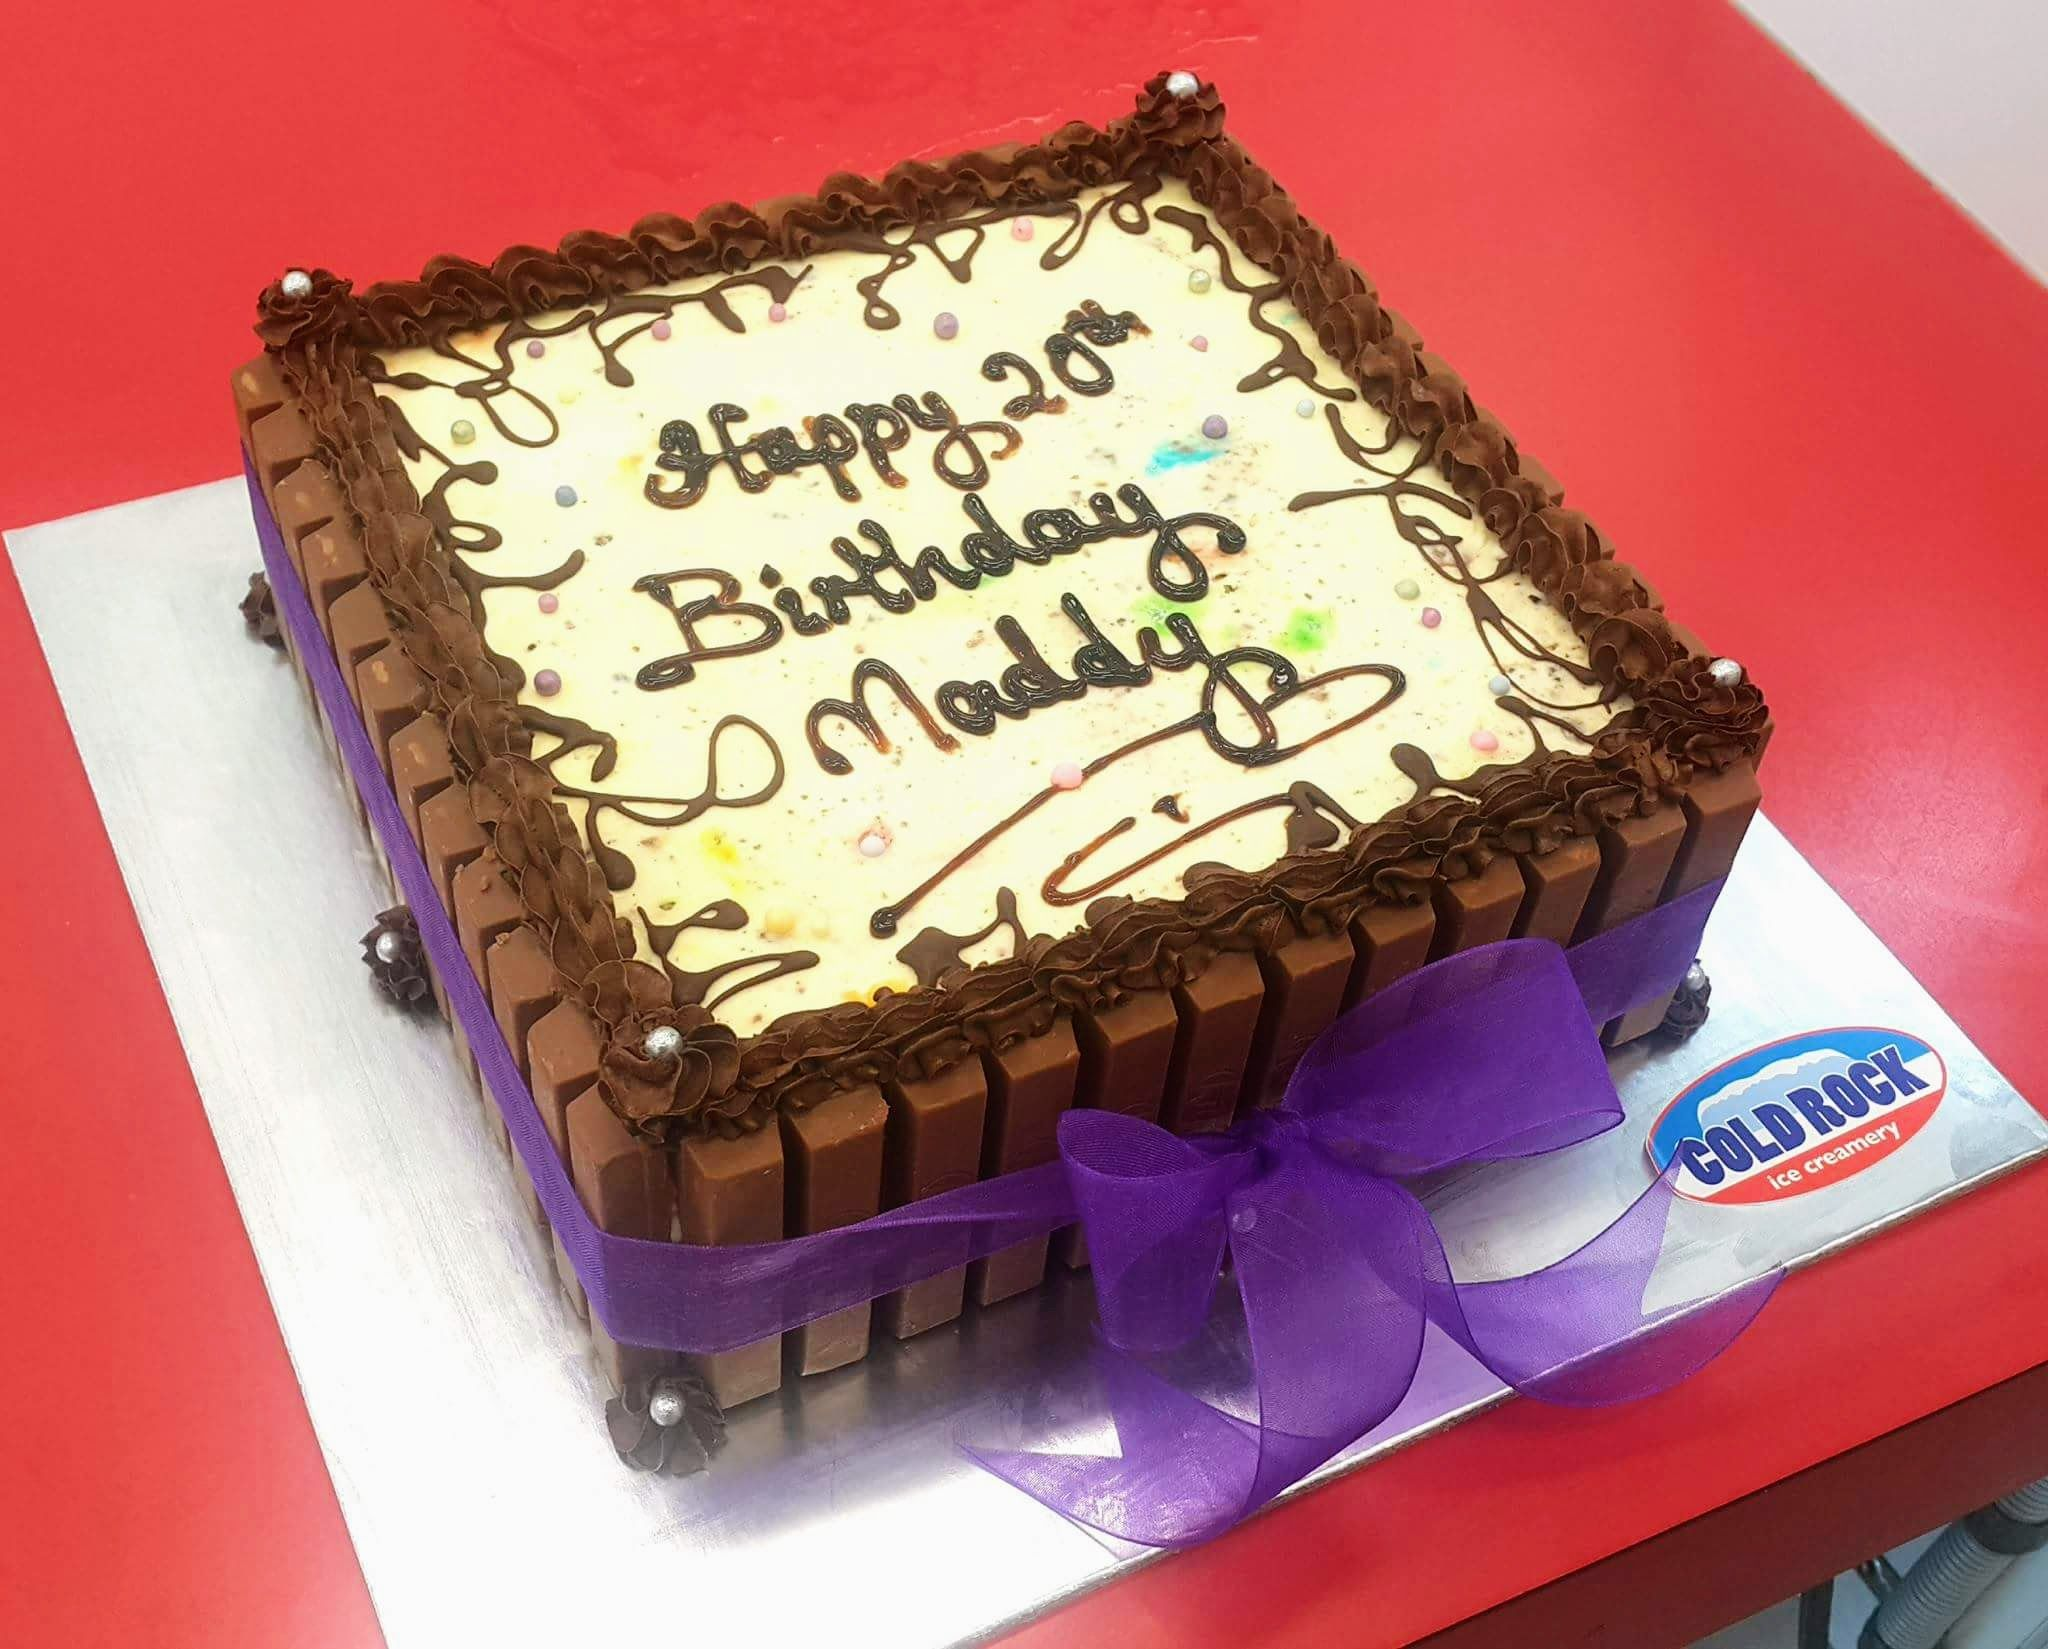 Happy 20th Birthday Maddy From The Staff At Cold Rock Aspley And